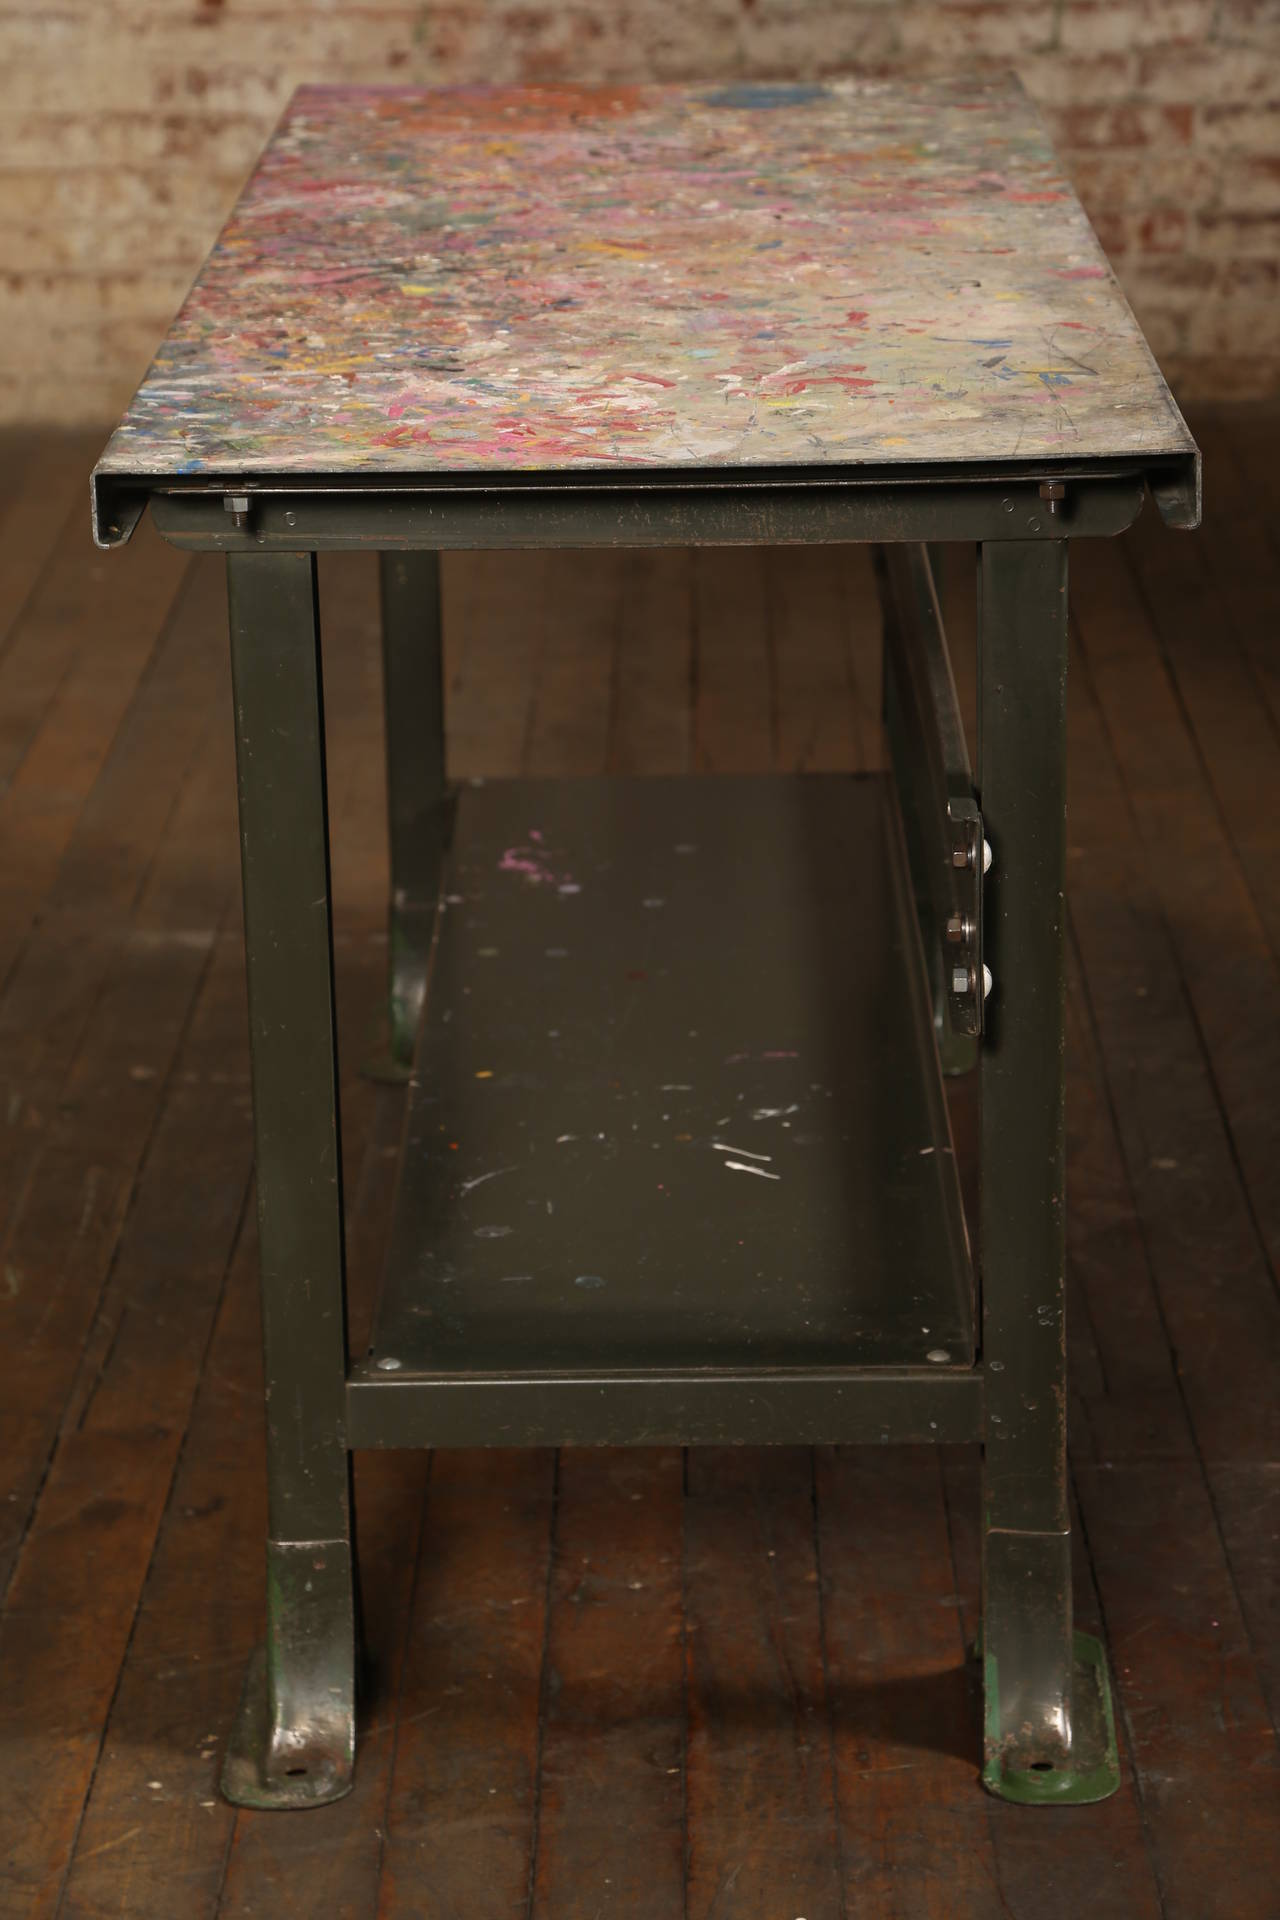 Rustic Artist's Table or Desk Vintage Industrial Metal Worn Painted Workbench For Sale 4